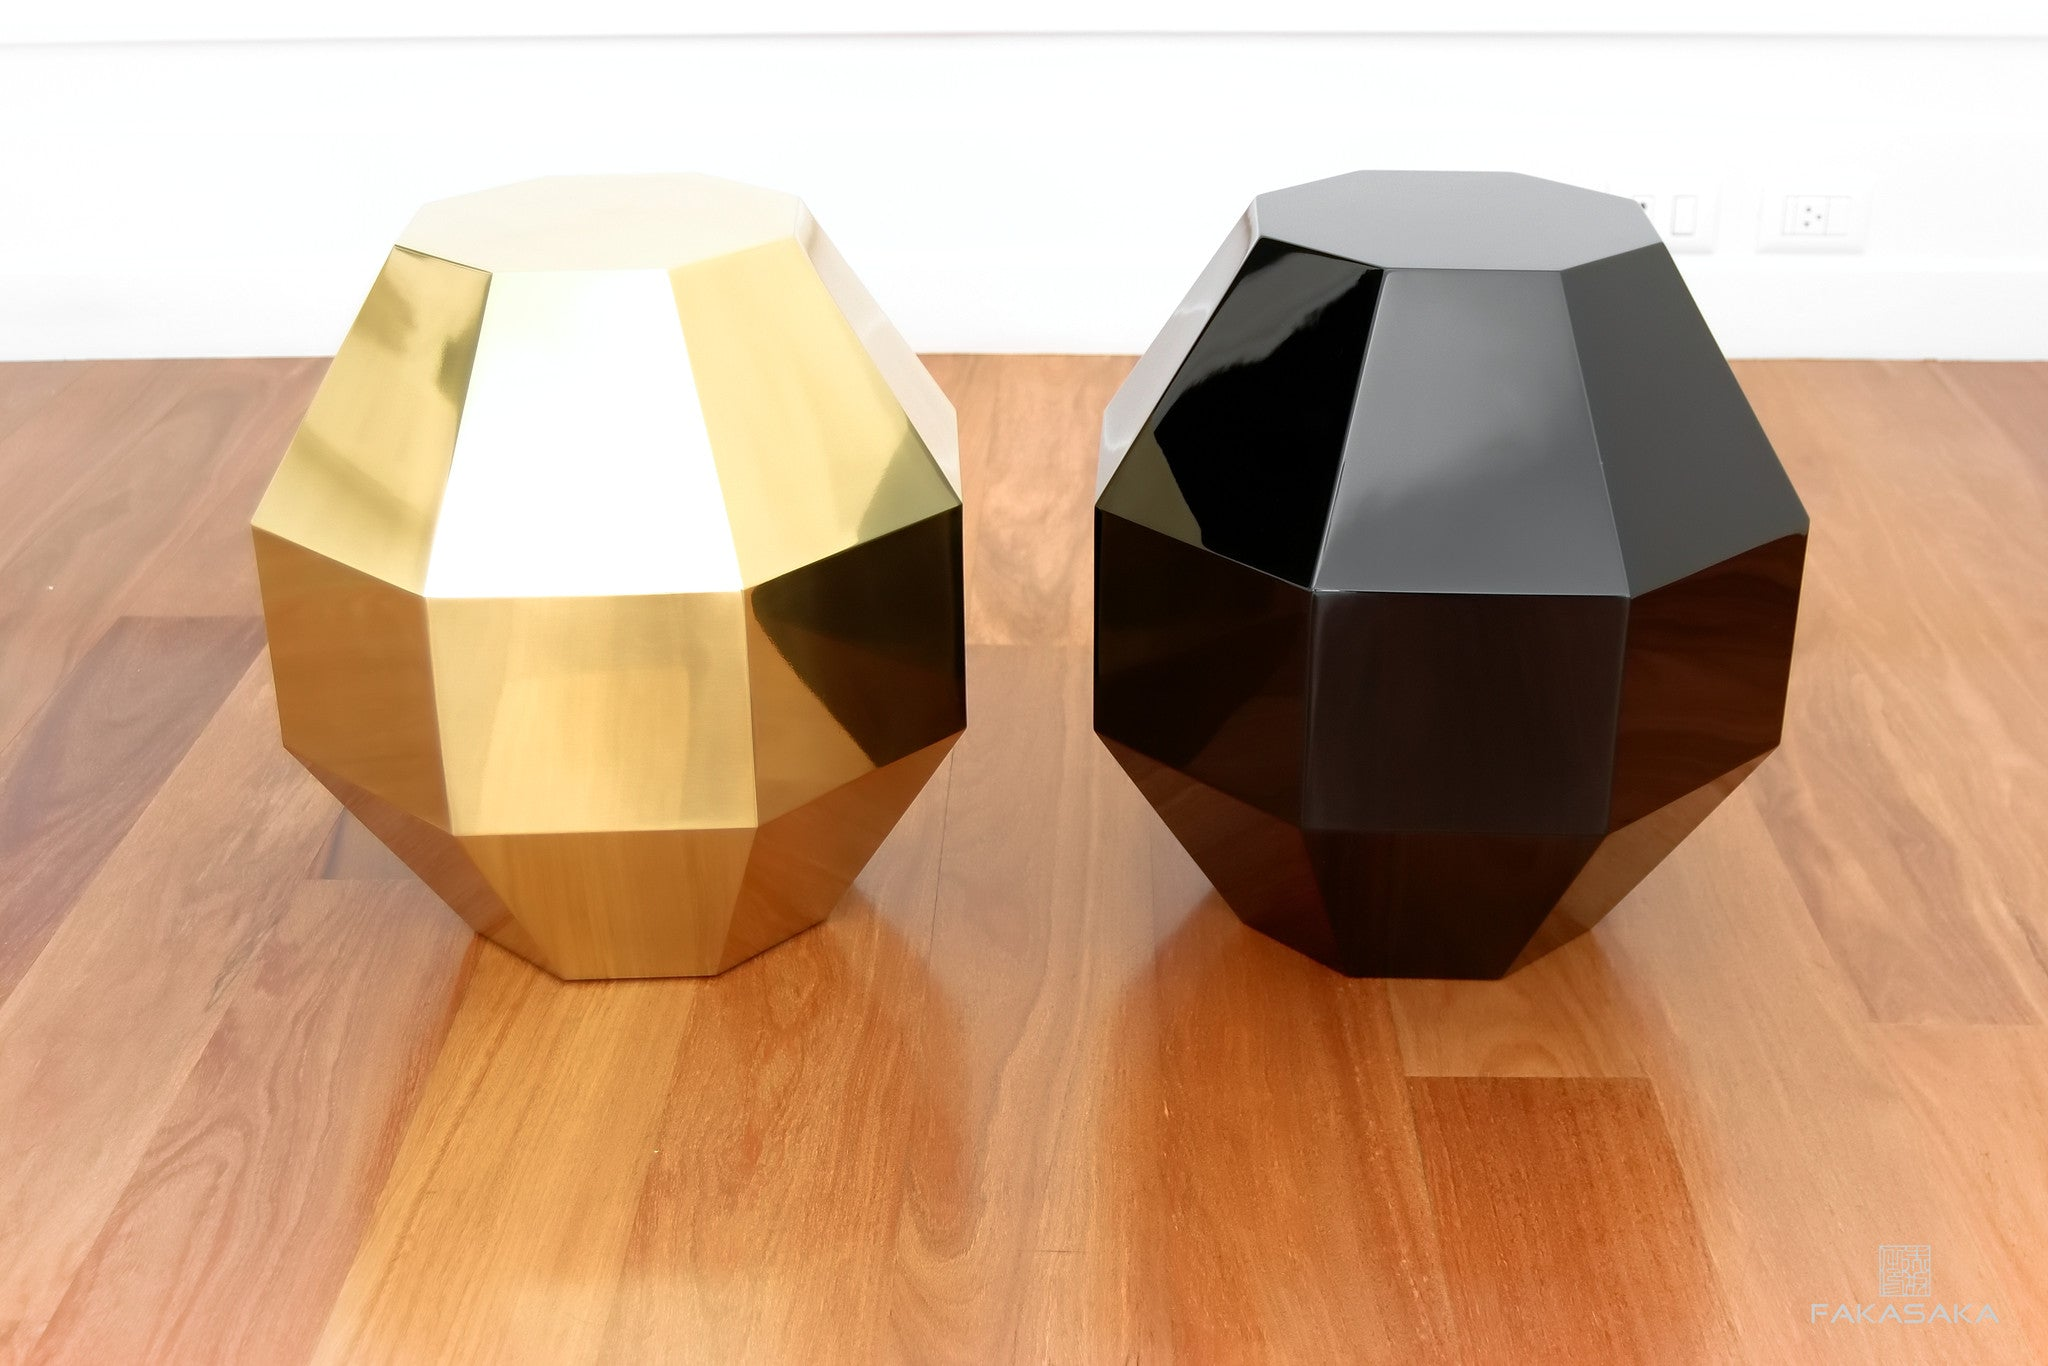 FA19 SIDE TABLE / DRINK TABLE<br><br>POLISHED BRASS